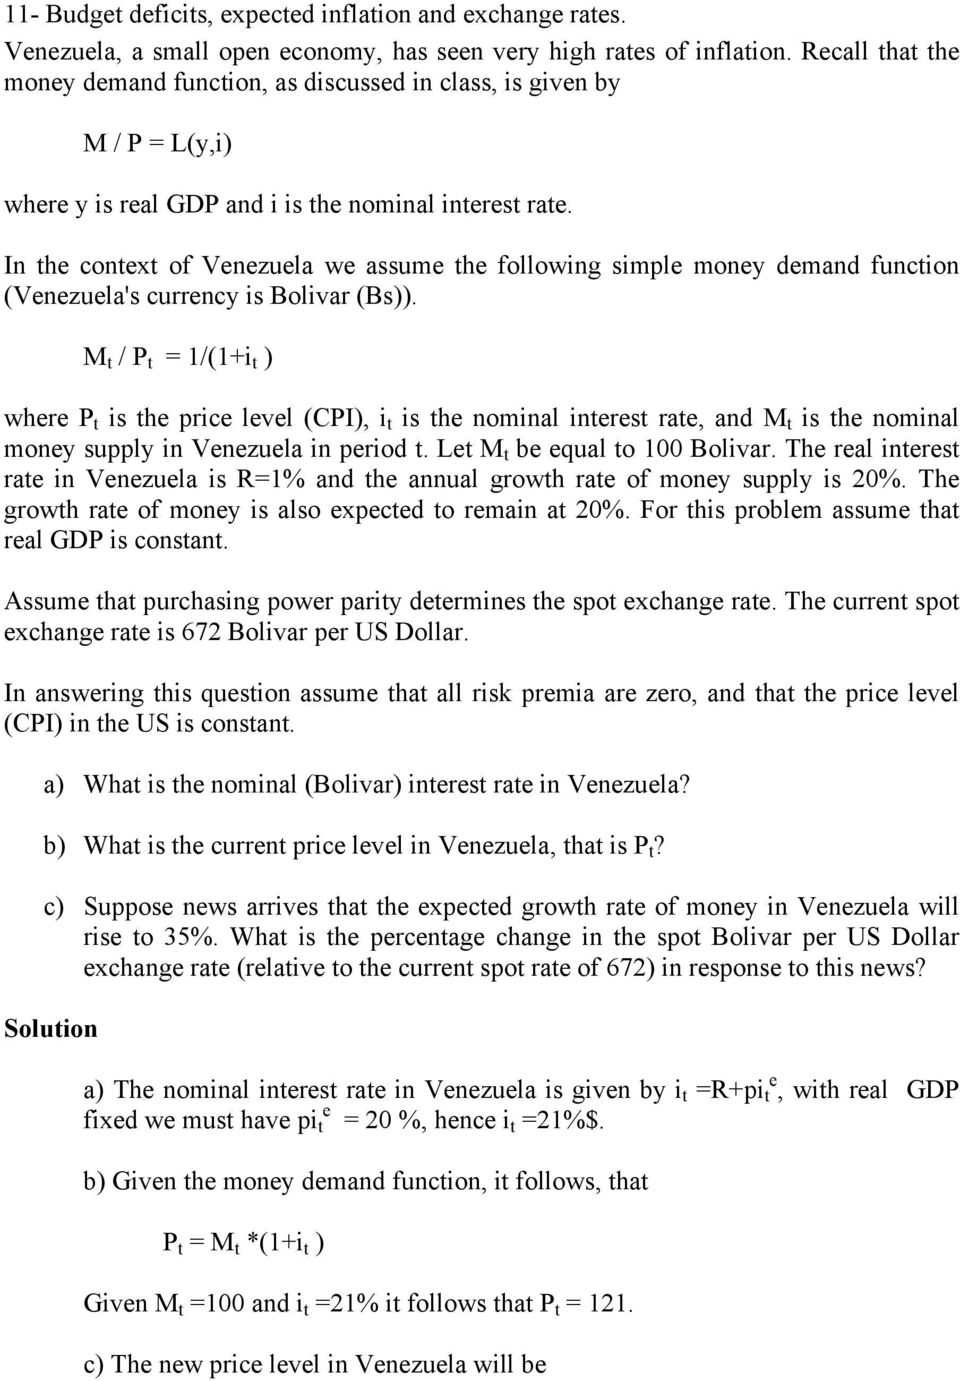 In the context of Venezuela we assume the following simple money demand function (Venezuela's currency is Bolivar (Bs)).